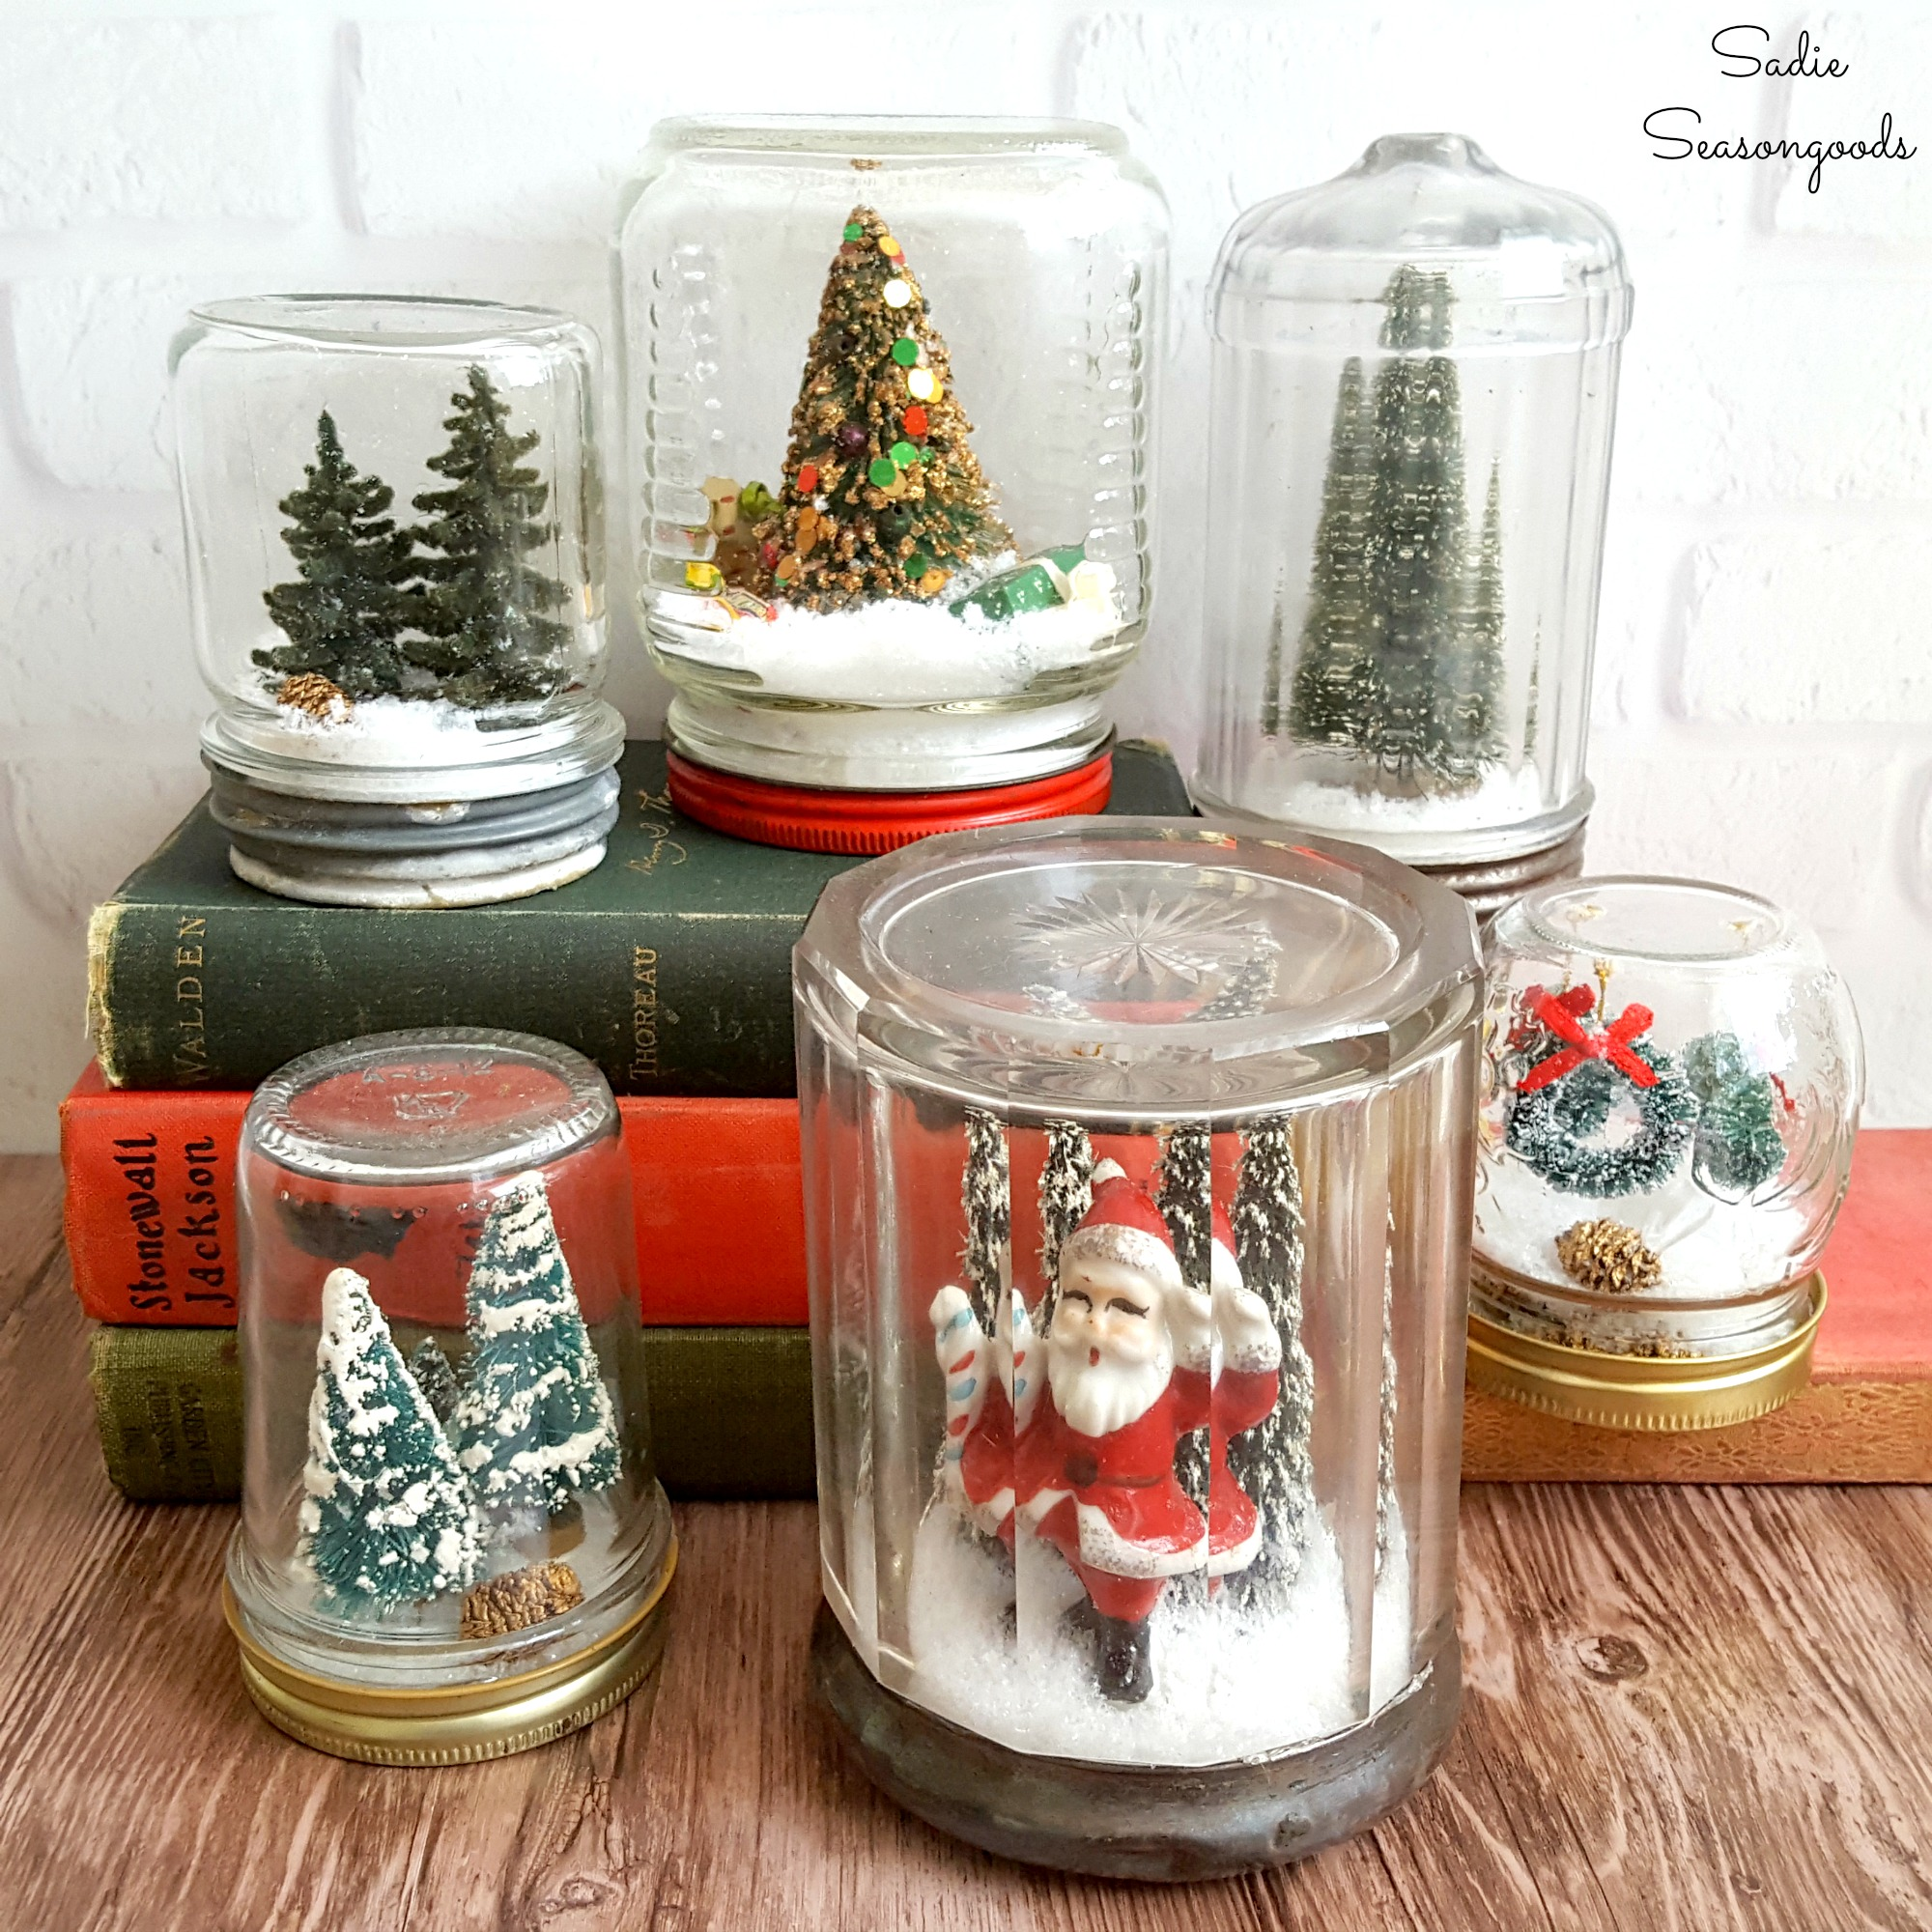 DIY_Waterless_Christmas_snowglobes_using_vintage_mason_jars_and_bottle_brush_trees_by_Sadie_Seasongoods